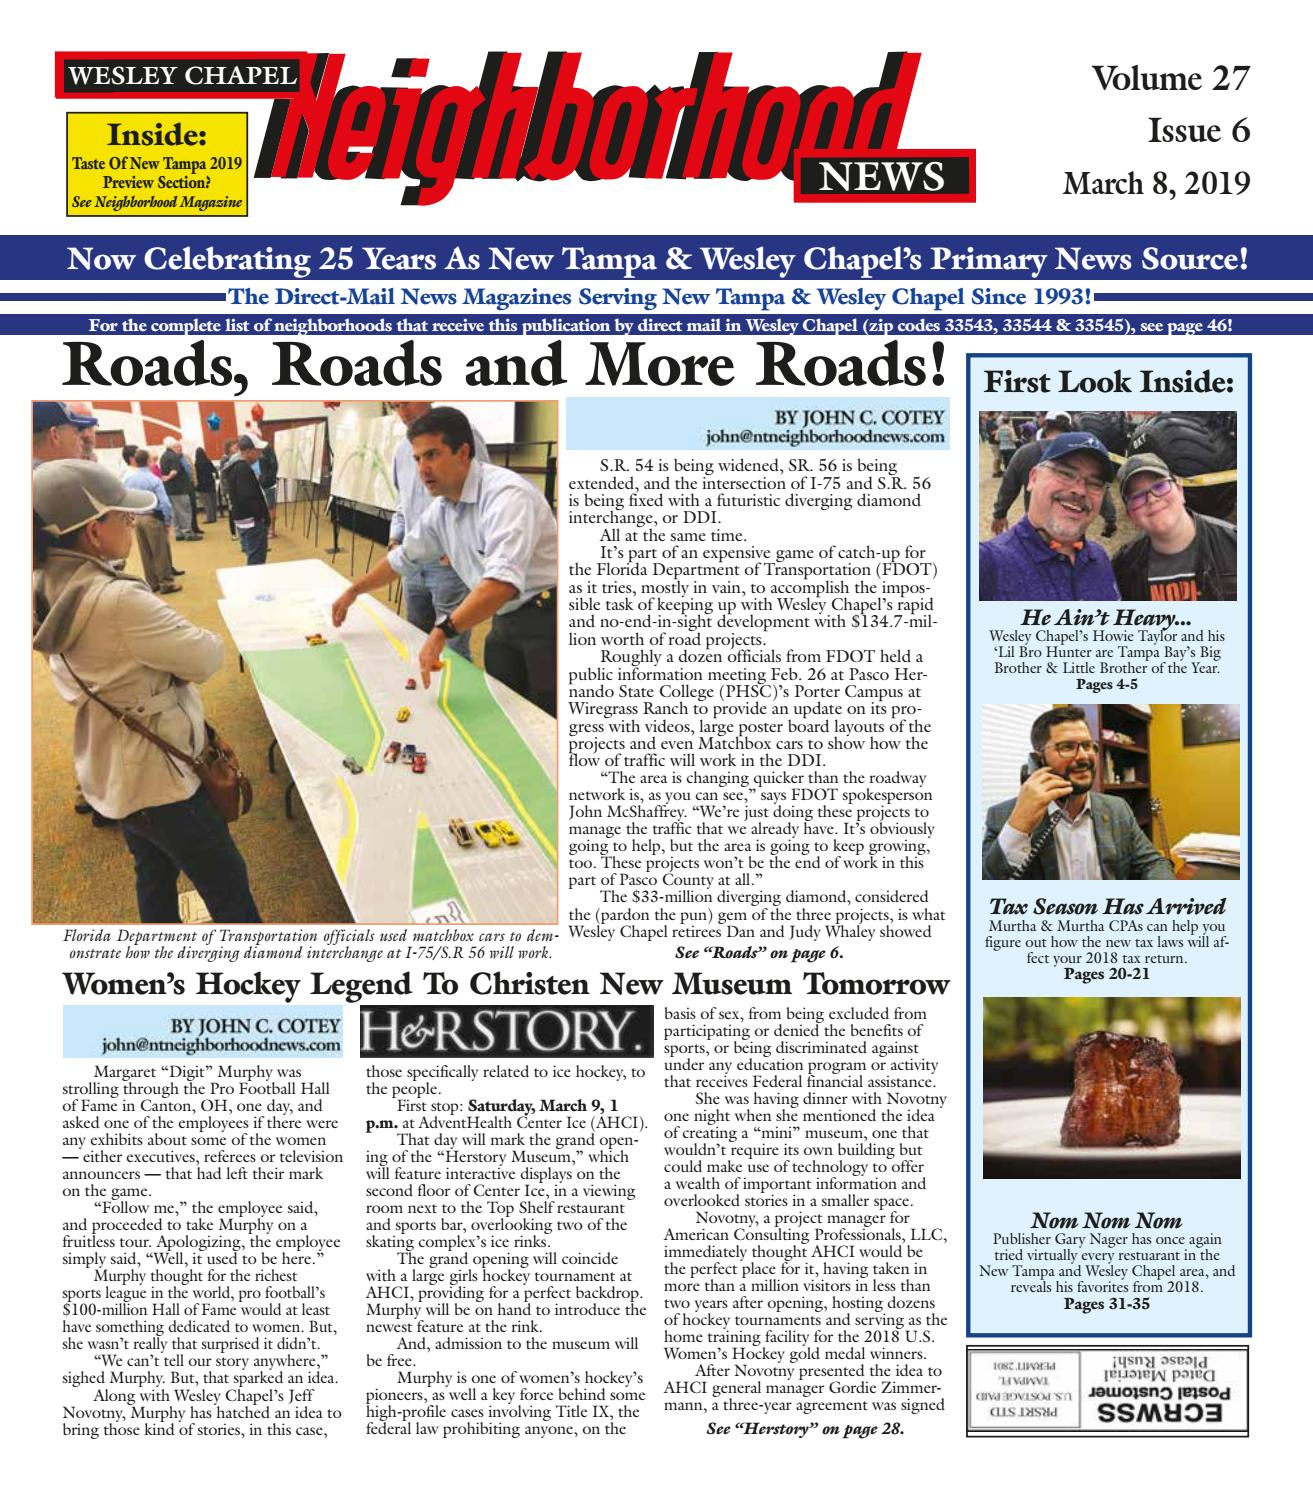 Wesley Chapel Neighborhood News, Volume 27  Issue 6, March 8, 2019